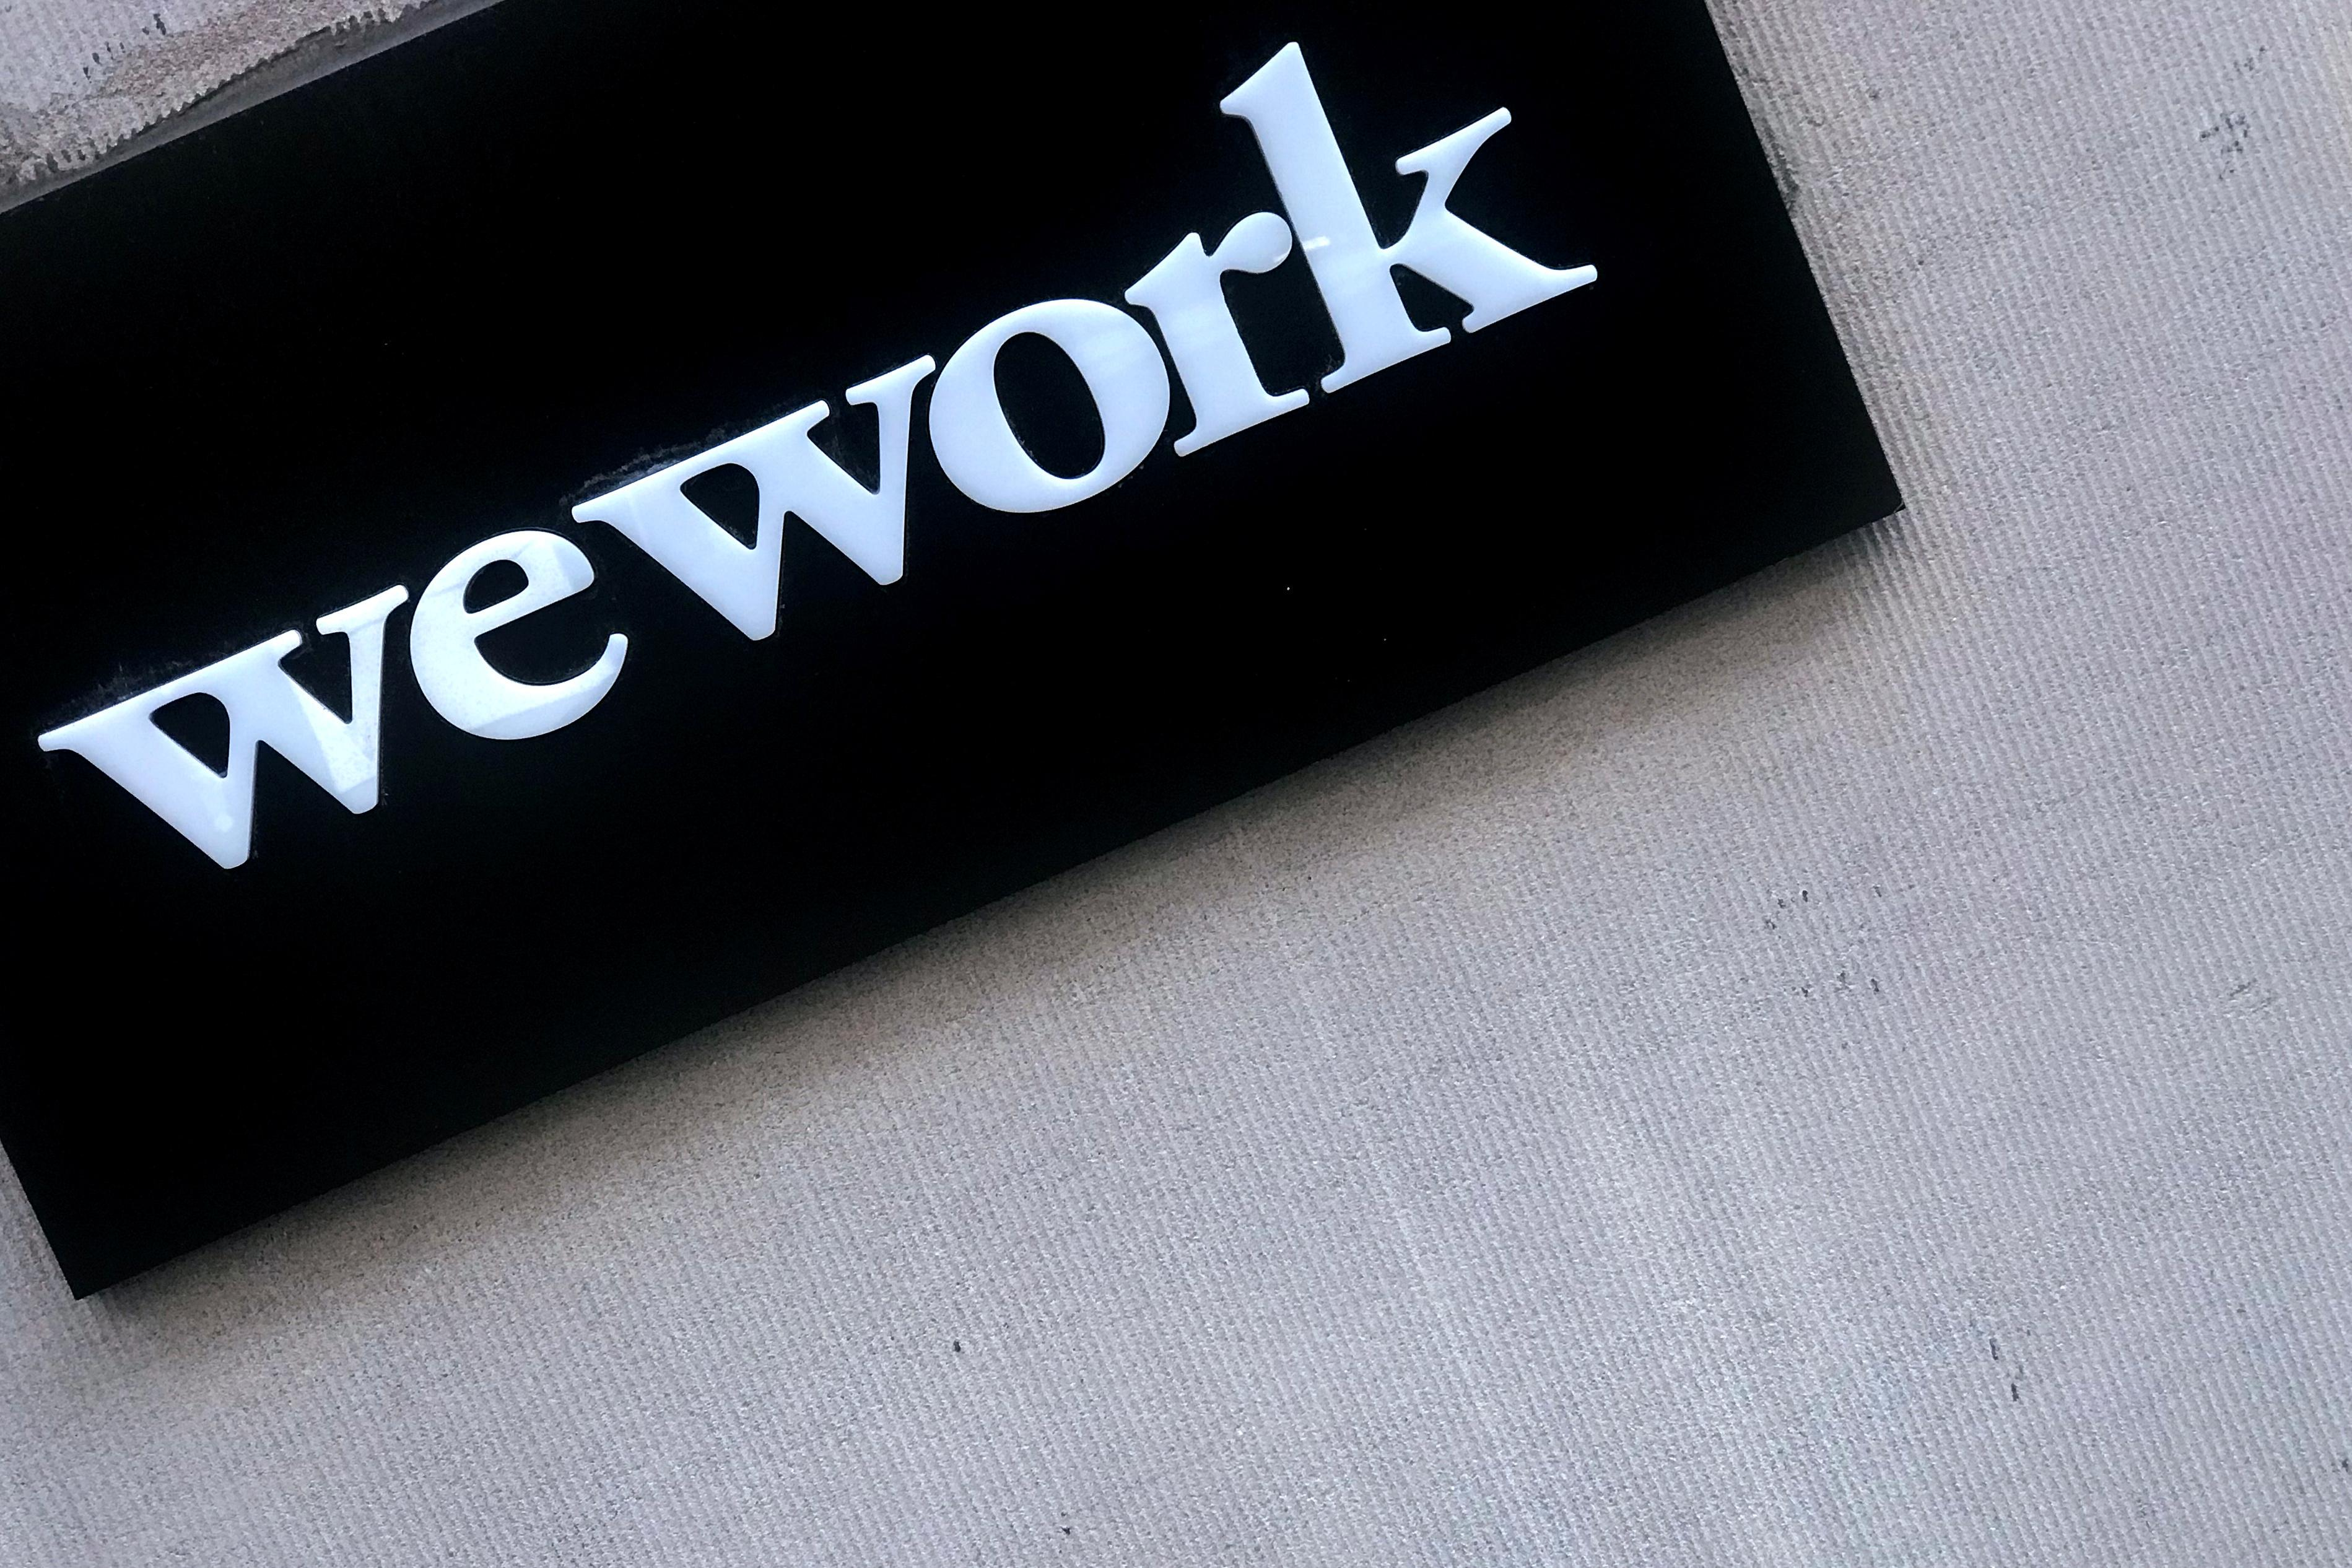 WeWork plans to lay off 4,000 staff - FT